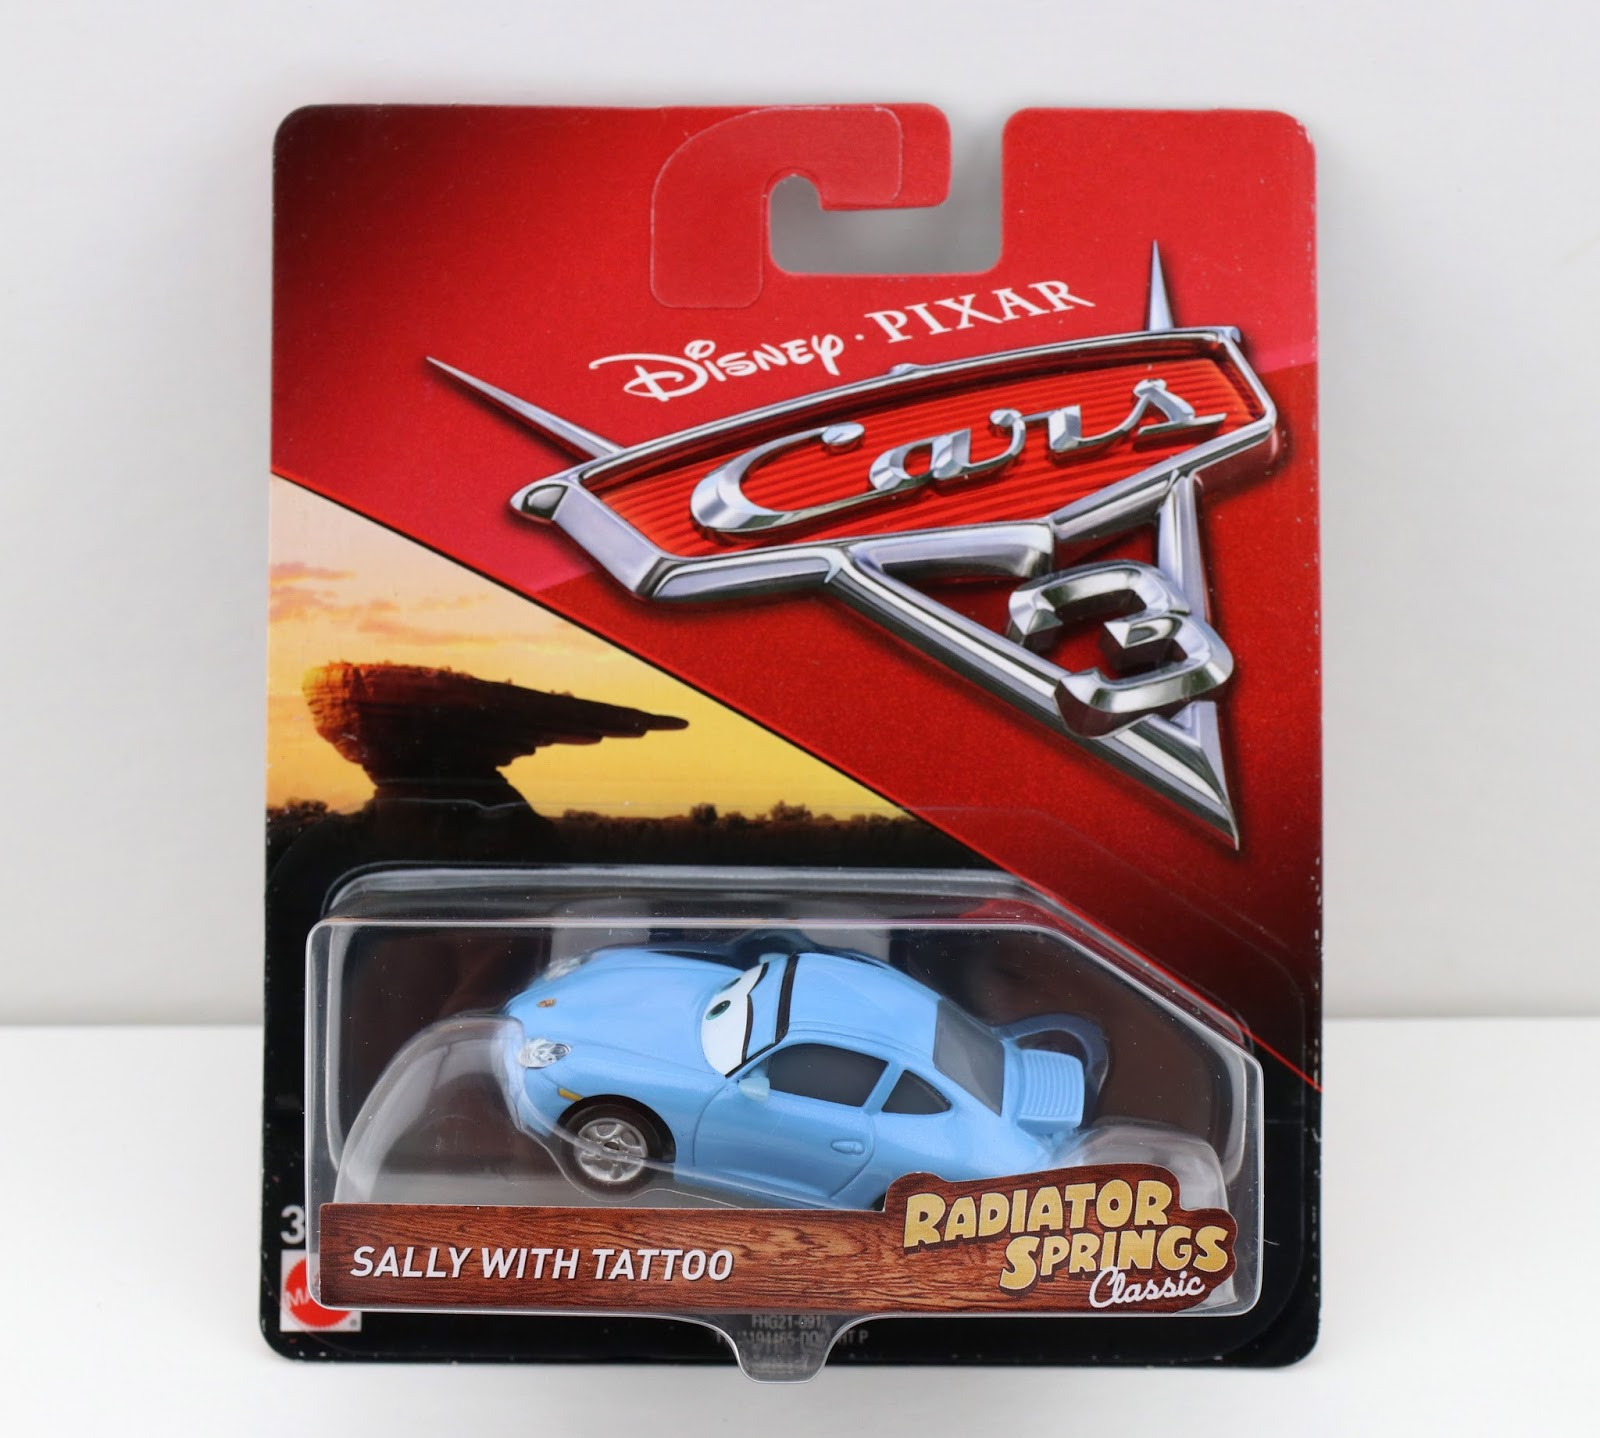 cars 3 radiator springs classic sally with tattoo